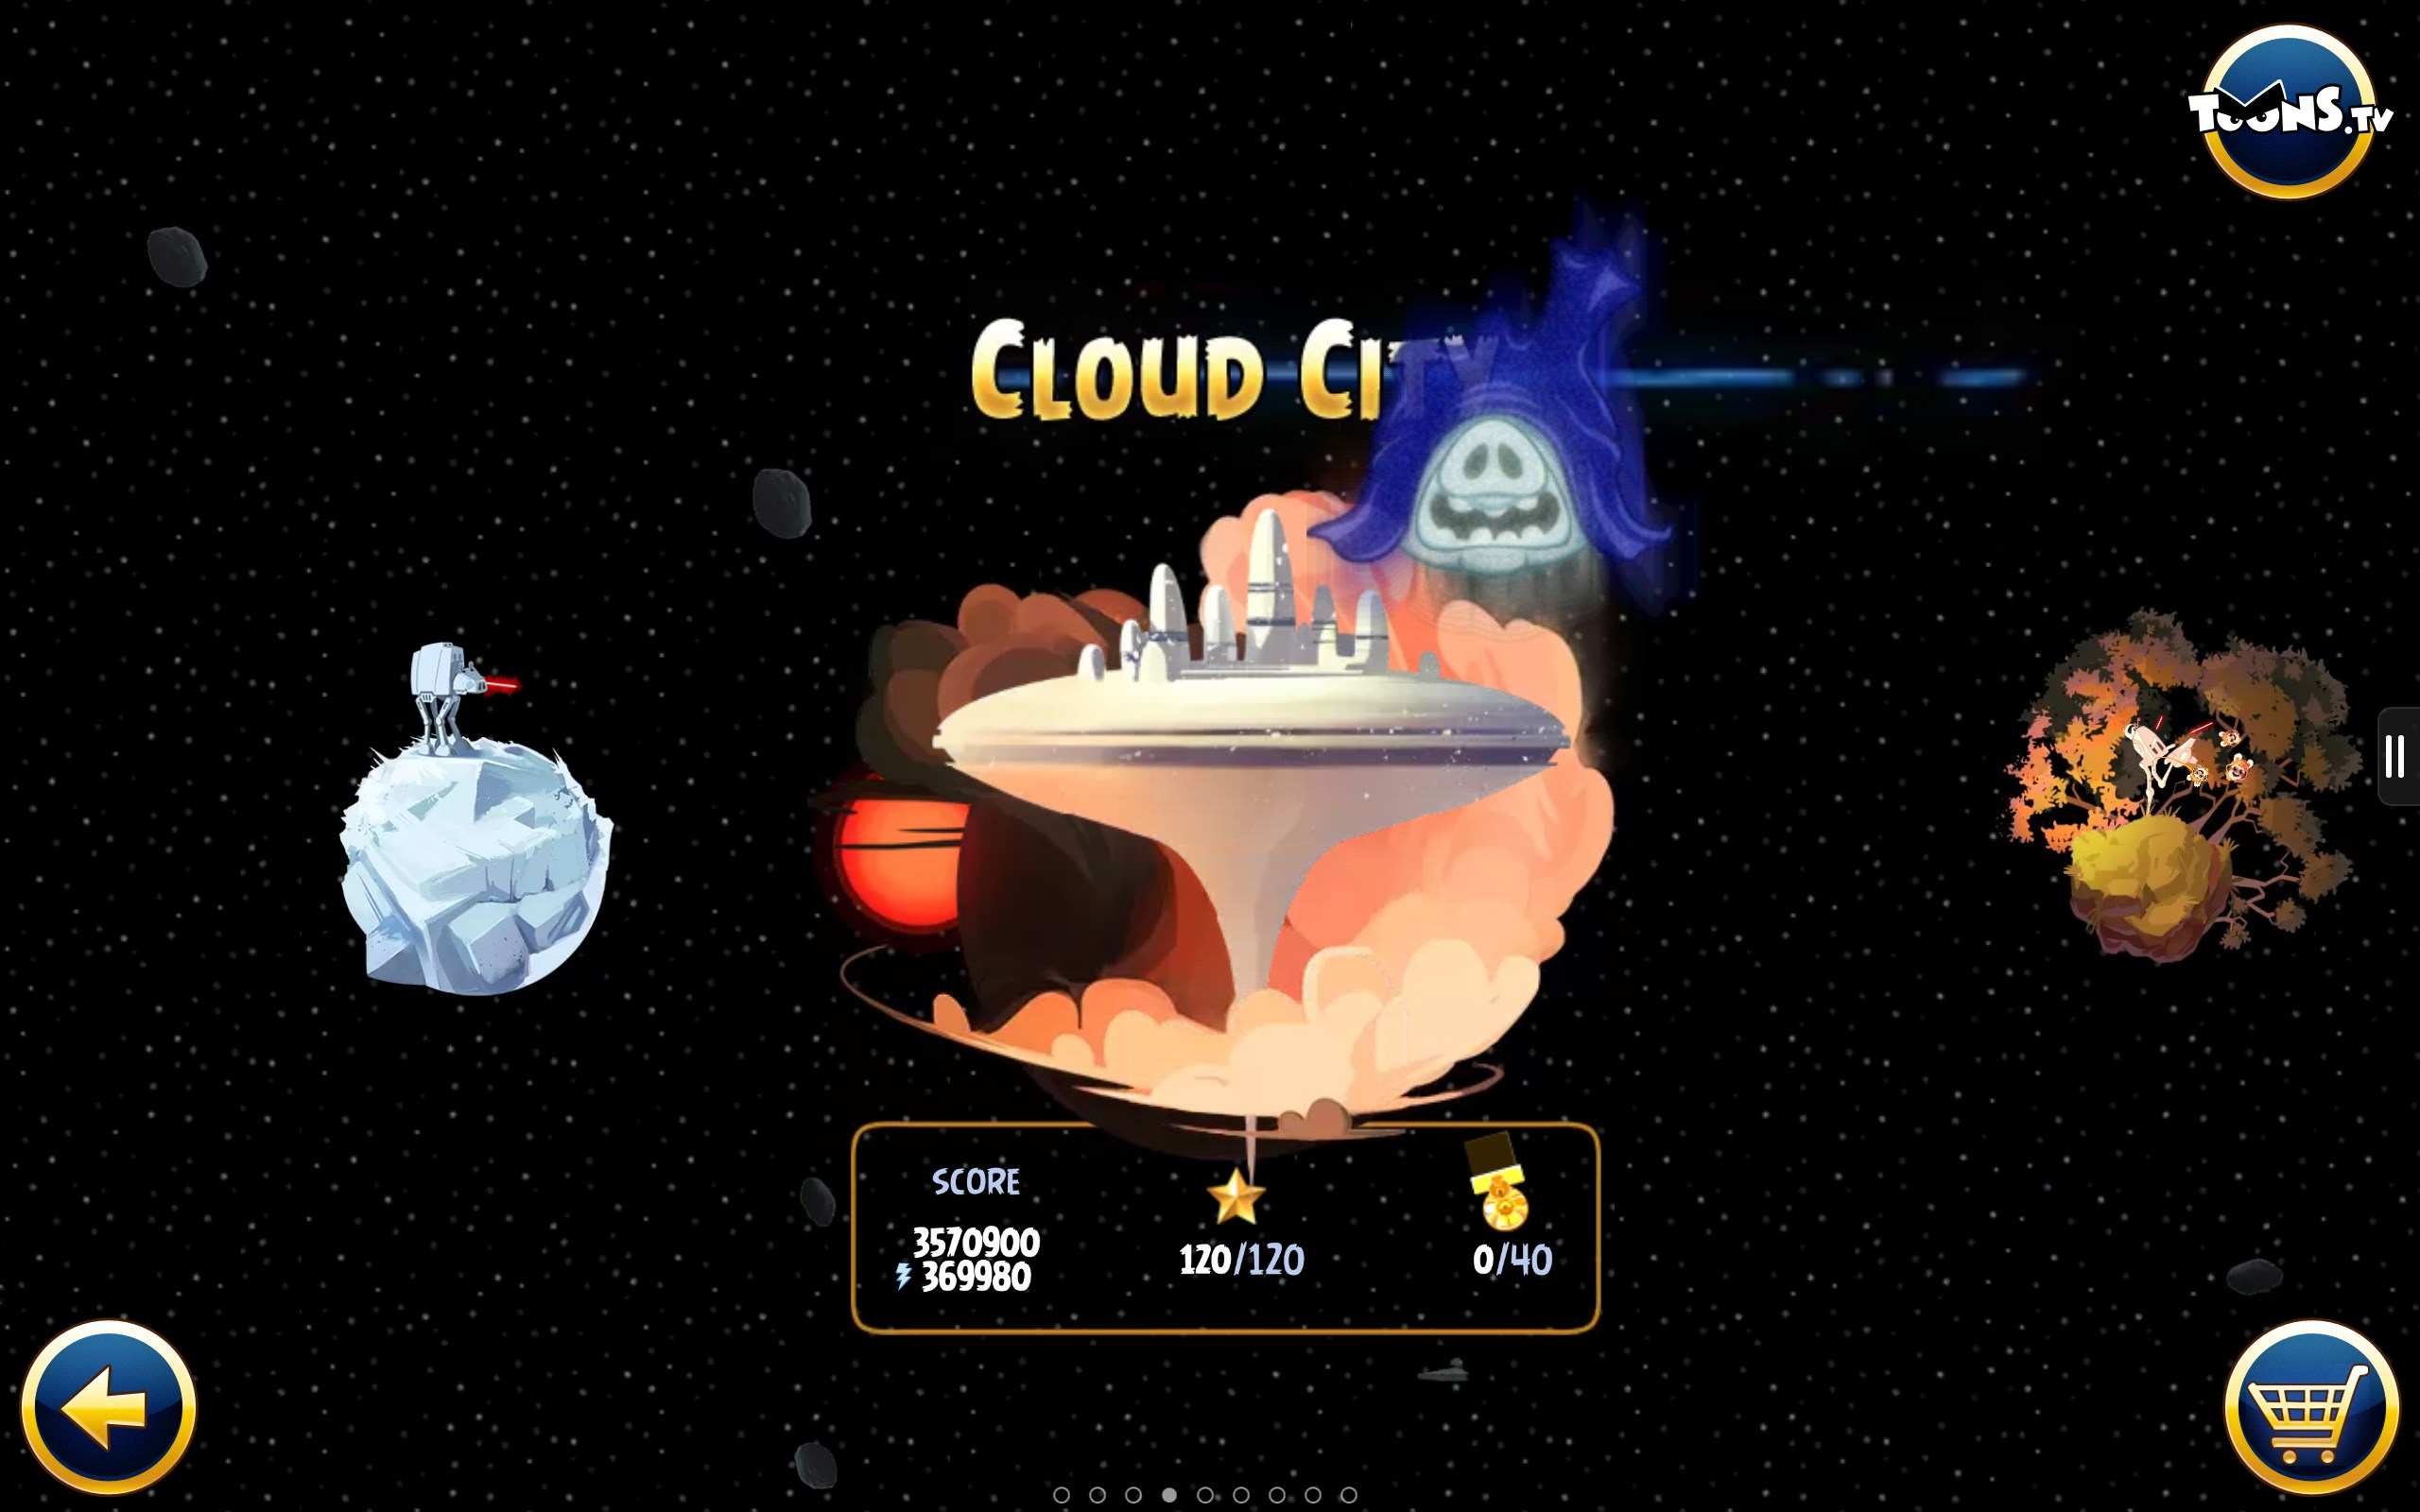 Angry birds star wars for amazon kindle fire 2018 free - Angry birds star wars 8 ...